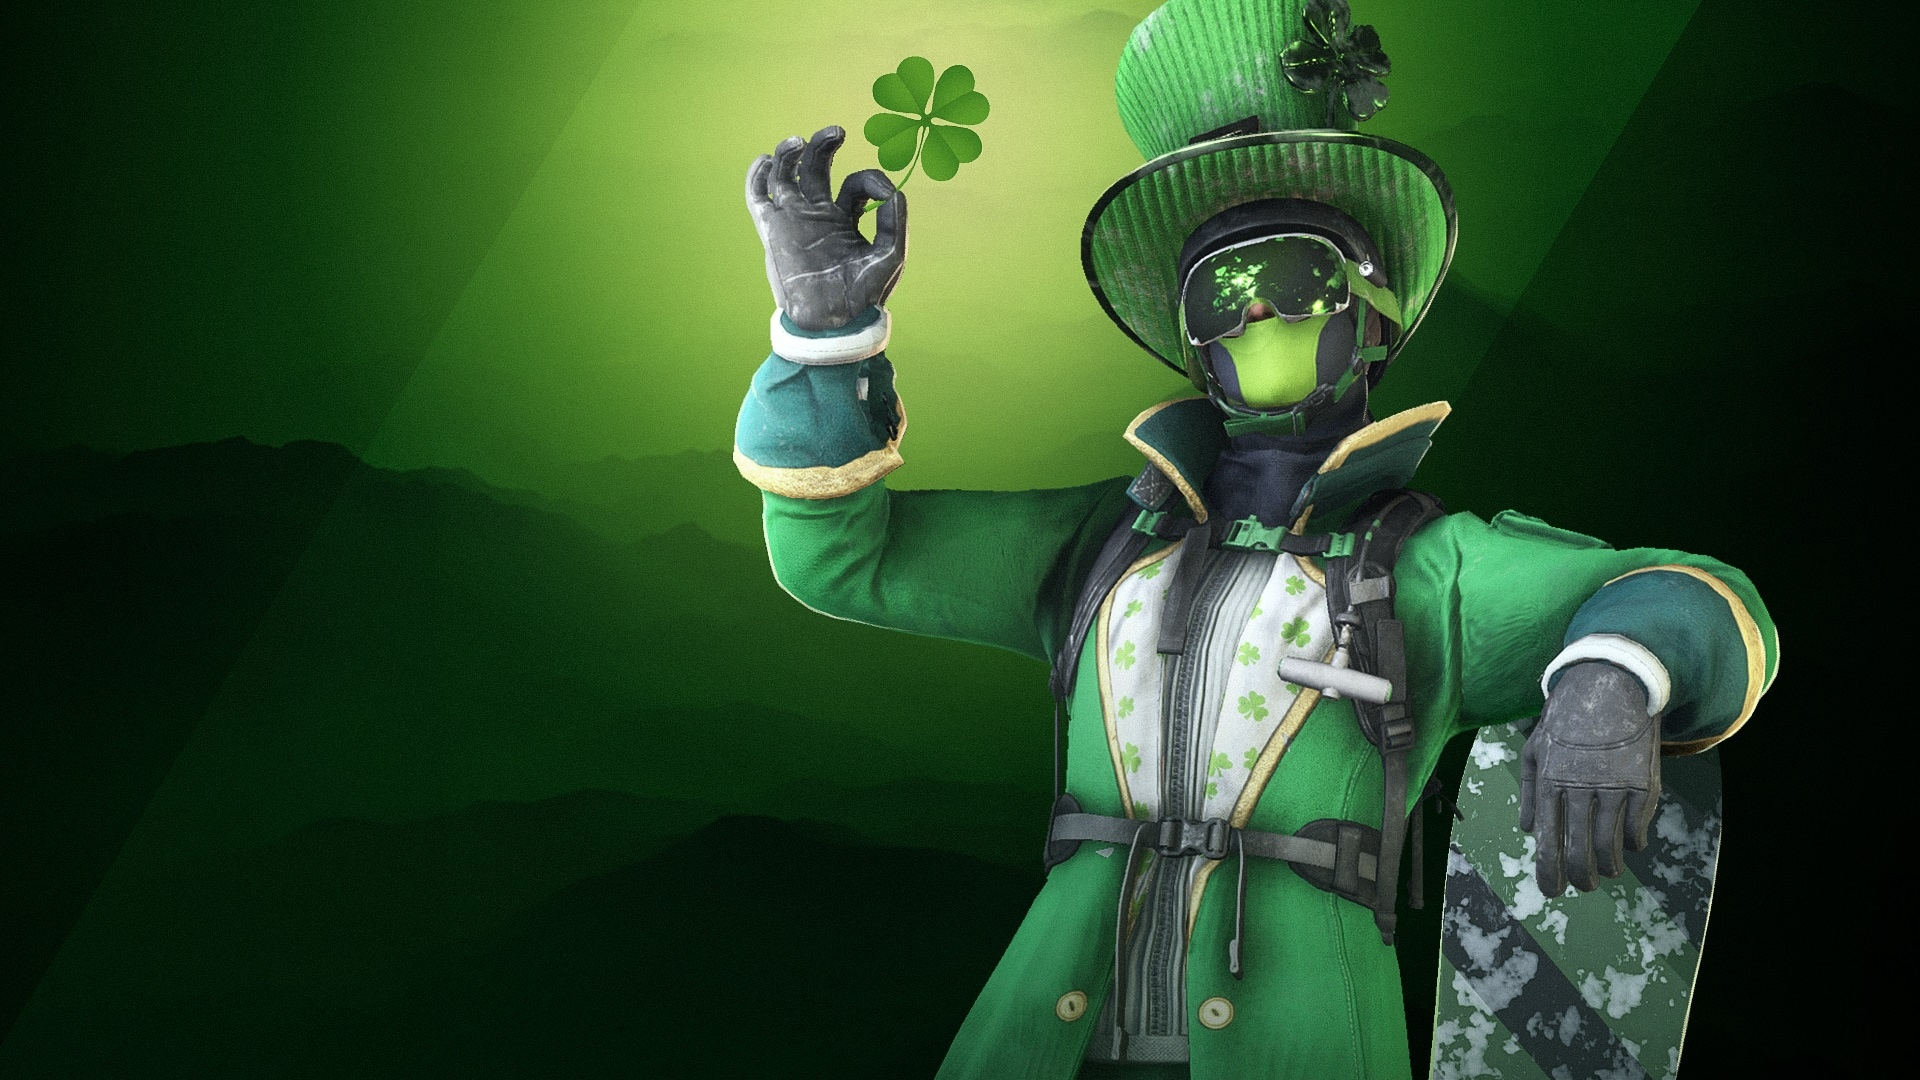 [2019-03-15] St Patricks Day News